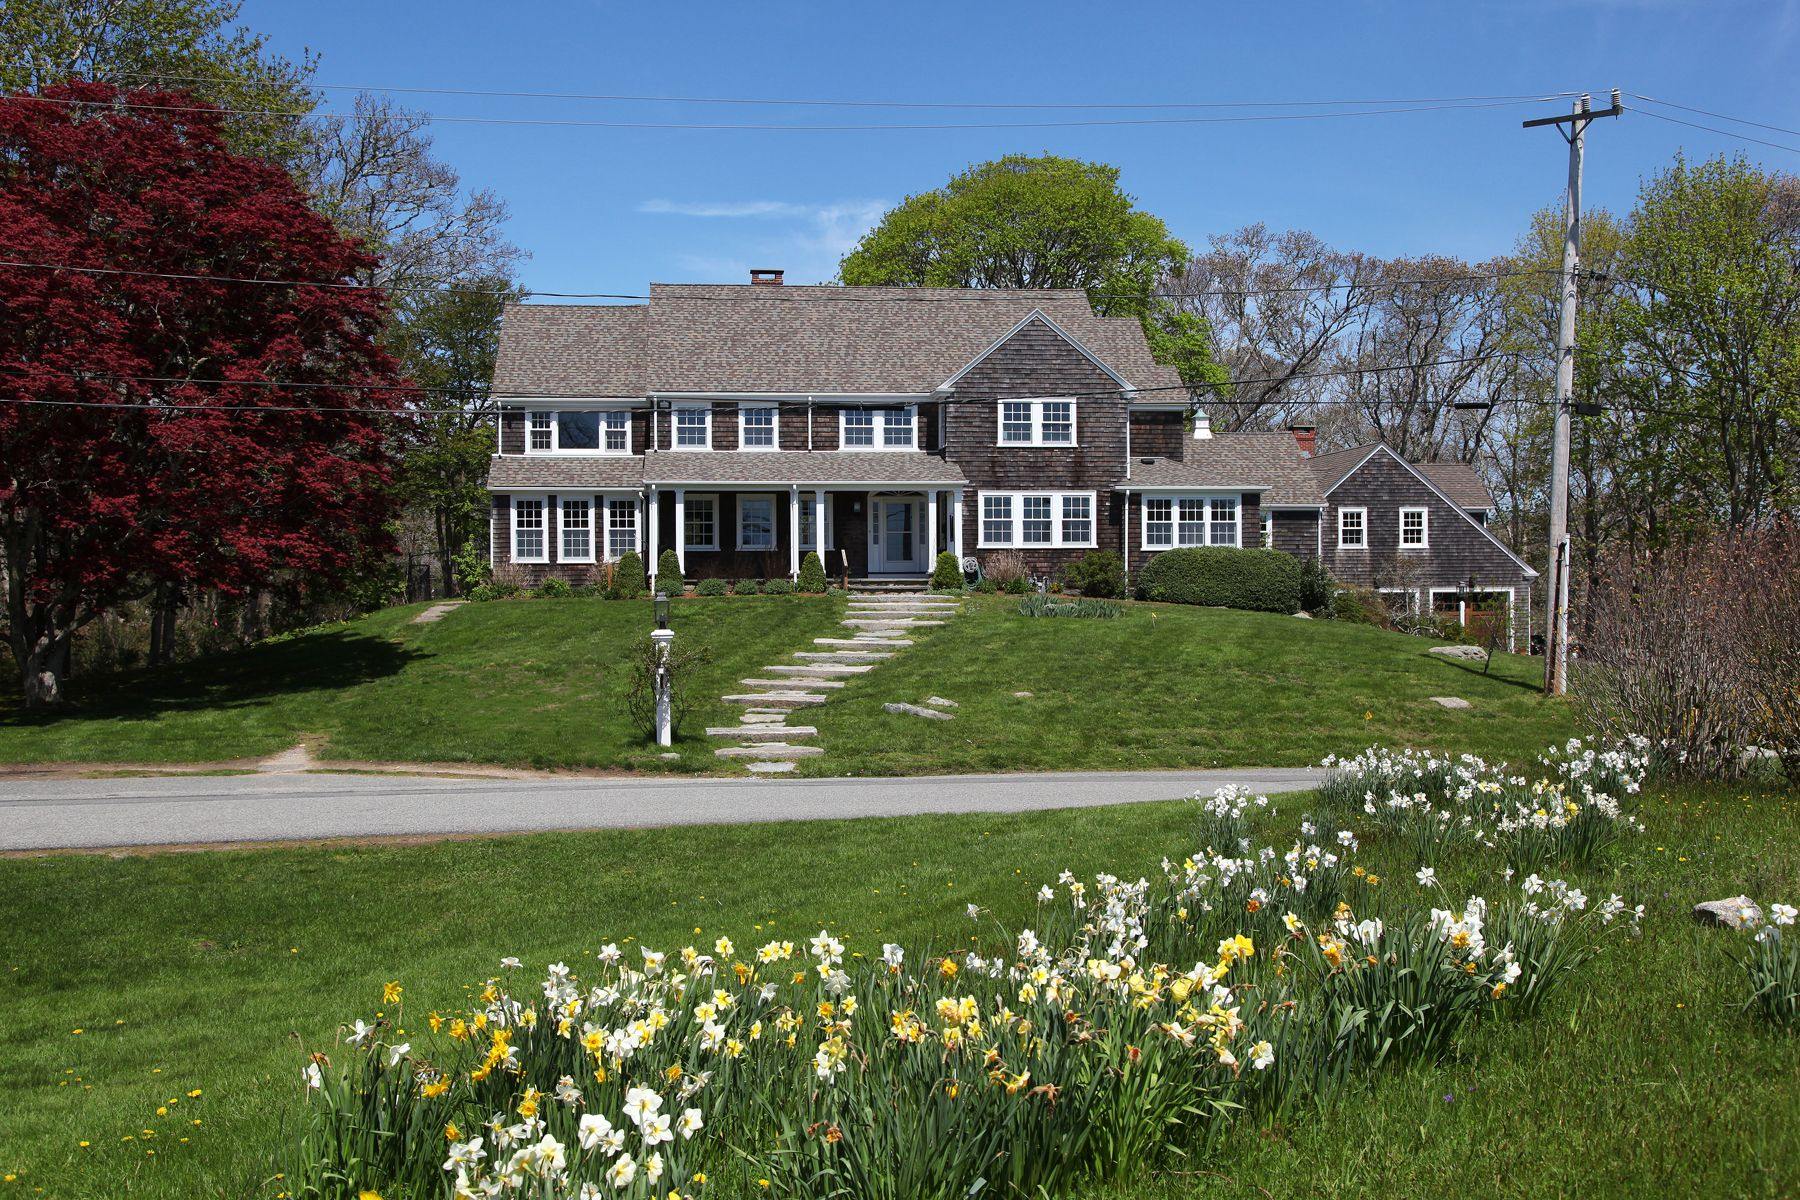 """Single Family Home for Active at """"The Moors"""" Shingle Style Estate 107 Moorland Road Falmouth, Massachusetts 02540 United States"""